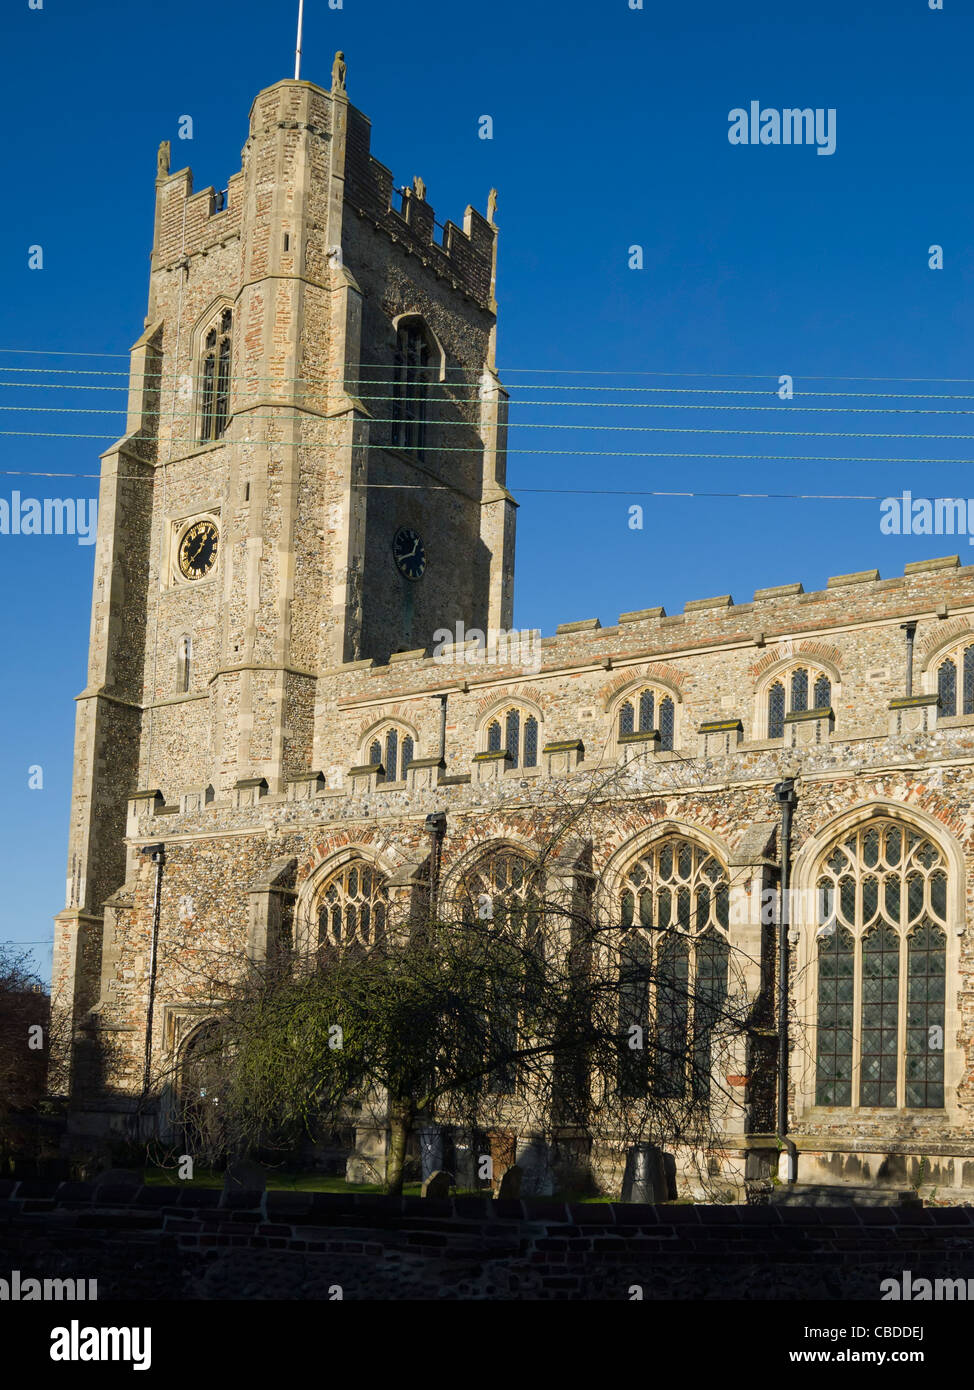 All Saints Church in Sudbury, England, photographed in the late-afternoon winter's light. Stock Photo